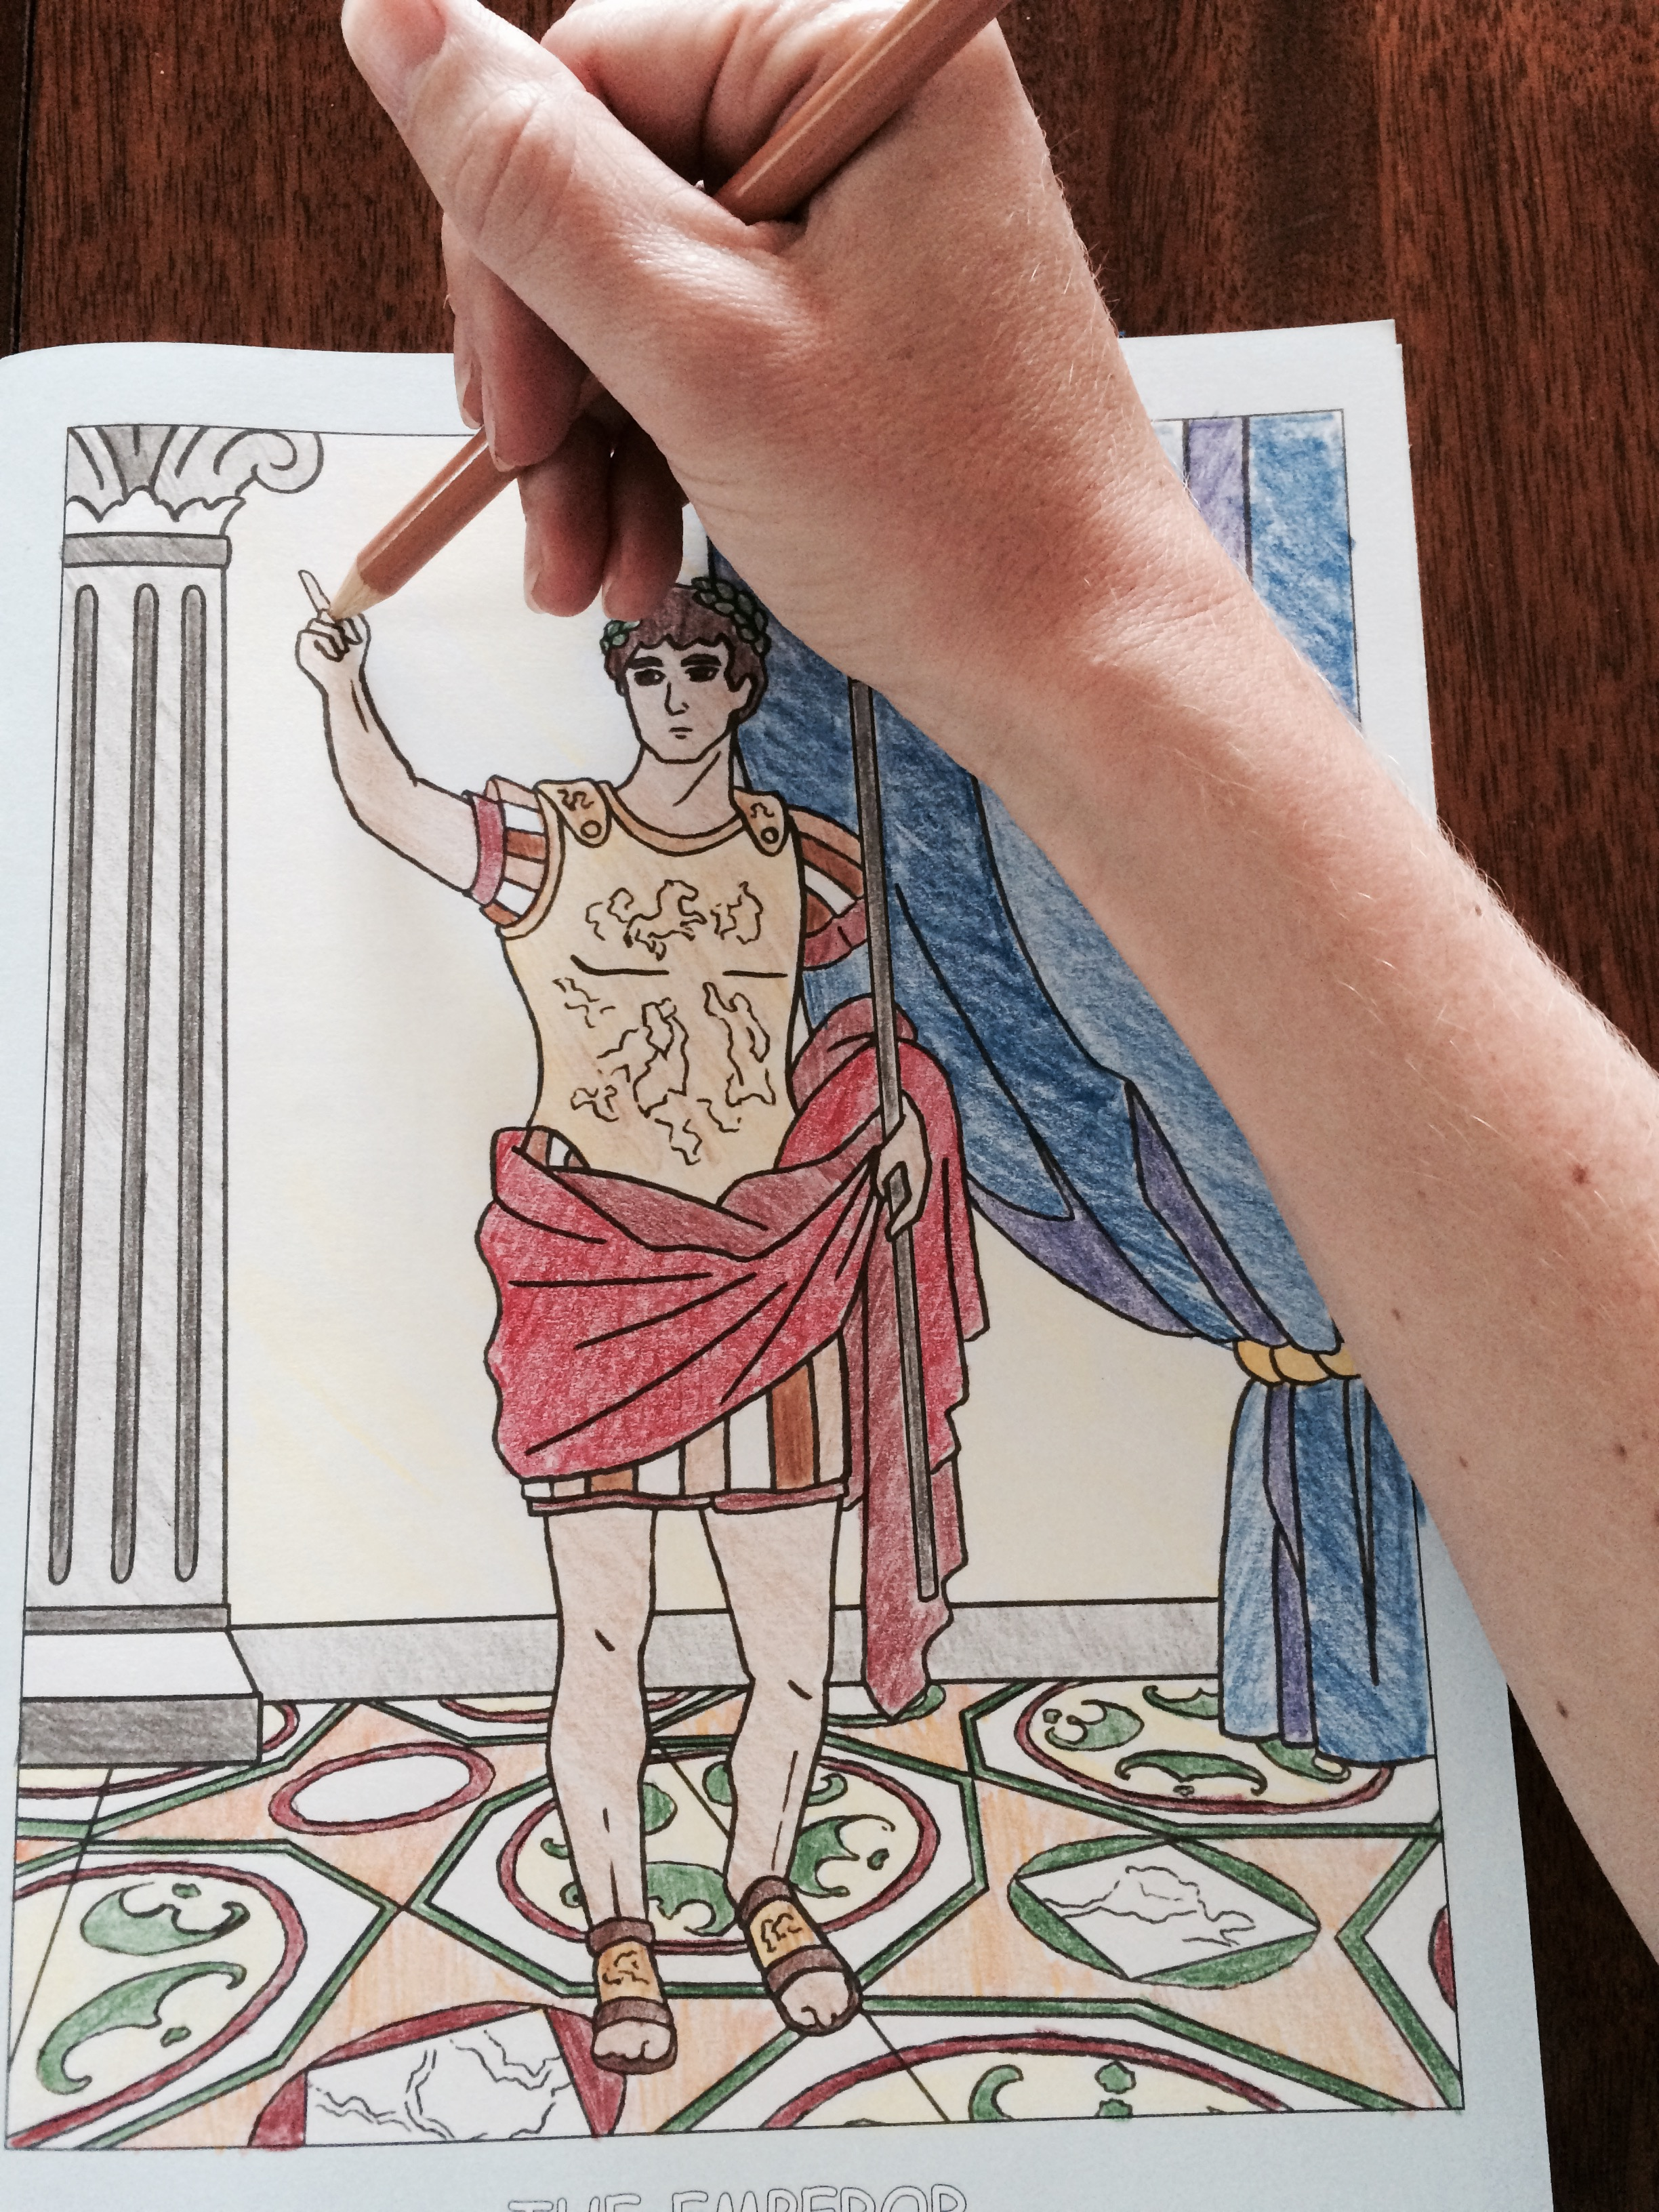 To display my fealty and devotion to the Shakespeare project, I even go above and beyond to track down pages from my kids' Rome coloring book for Caesar imagery! Behold, my handiwork!